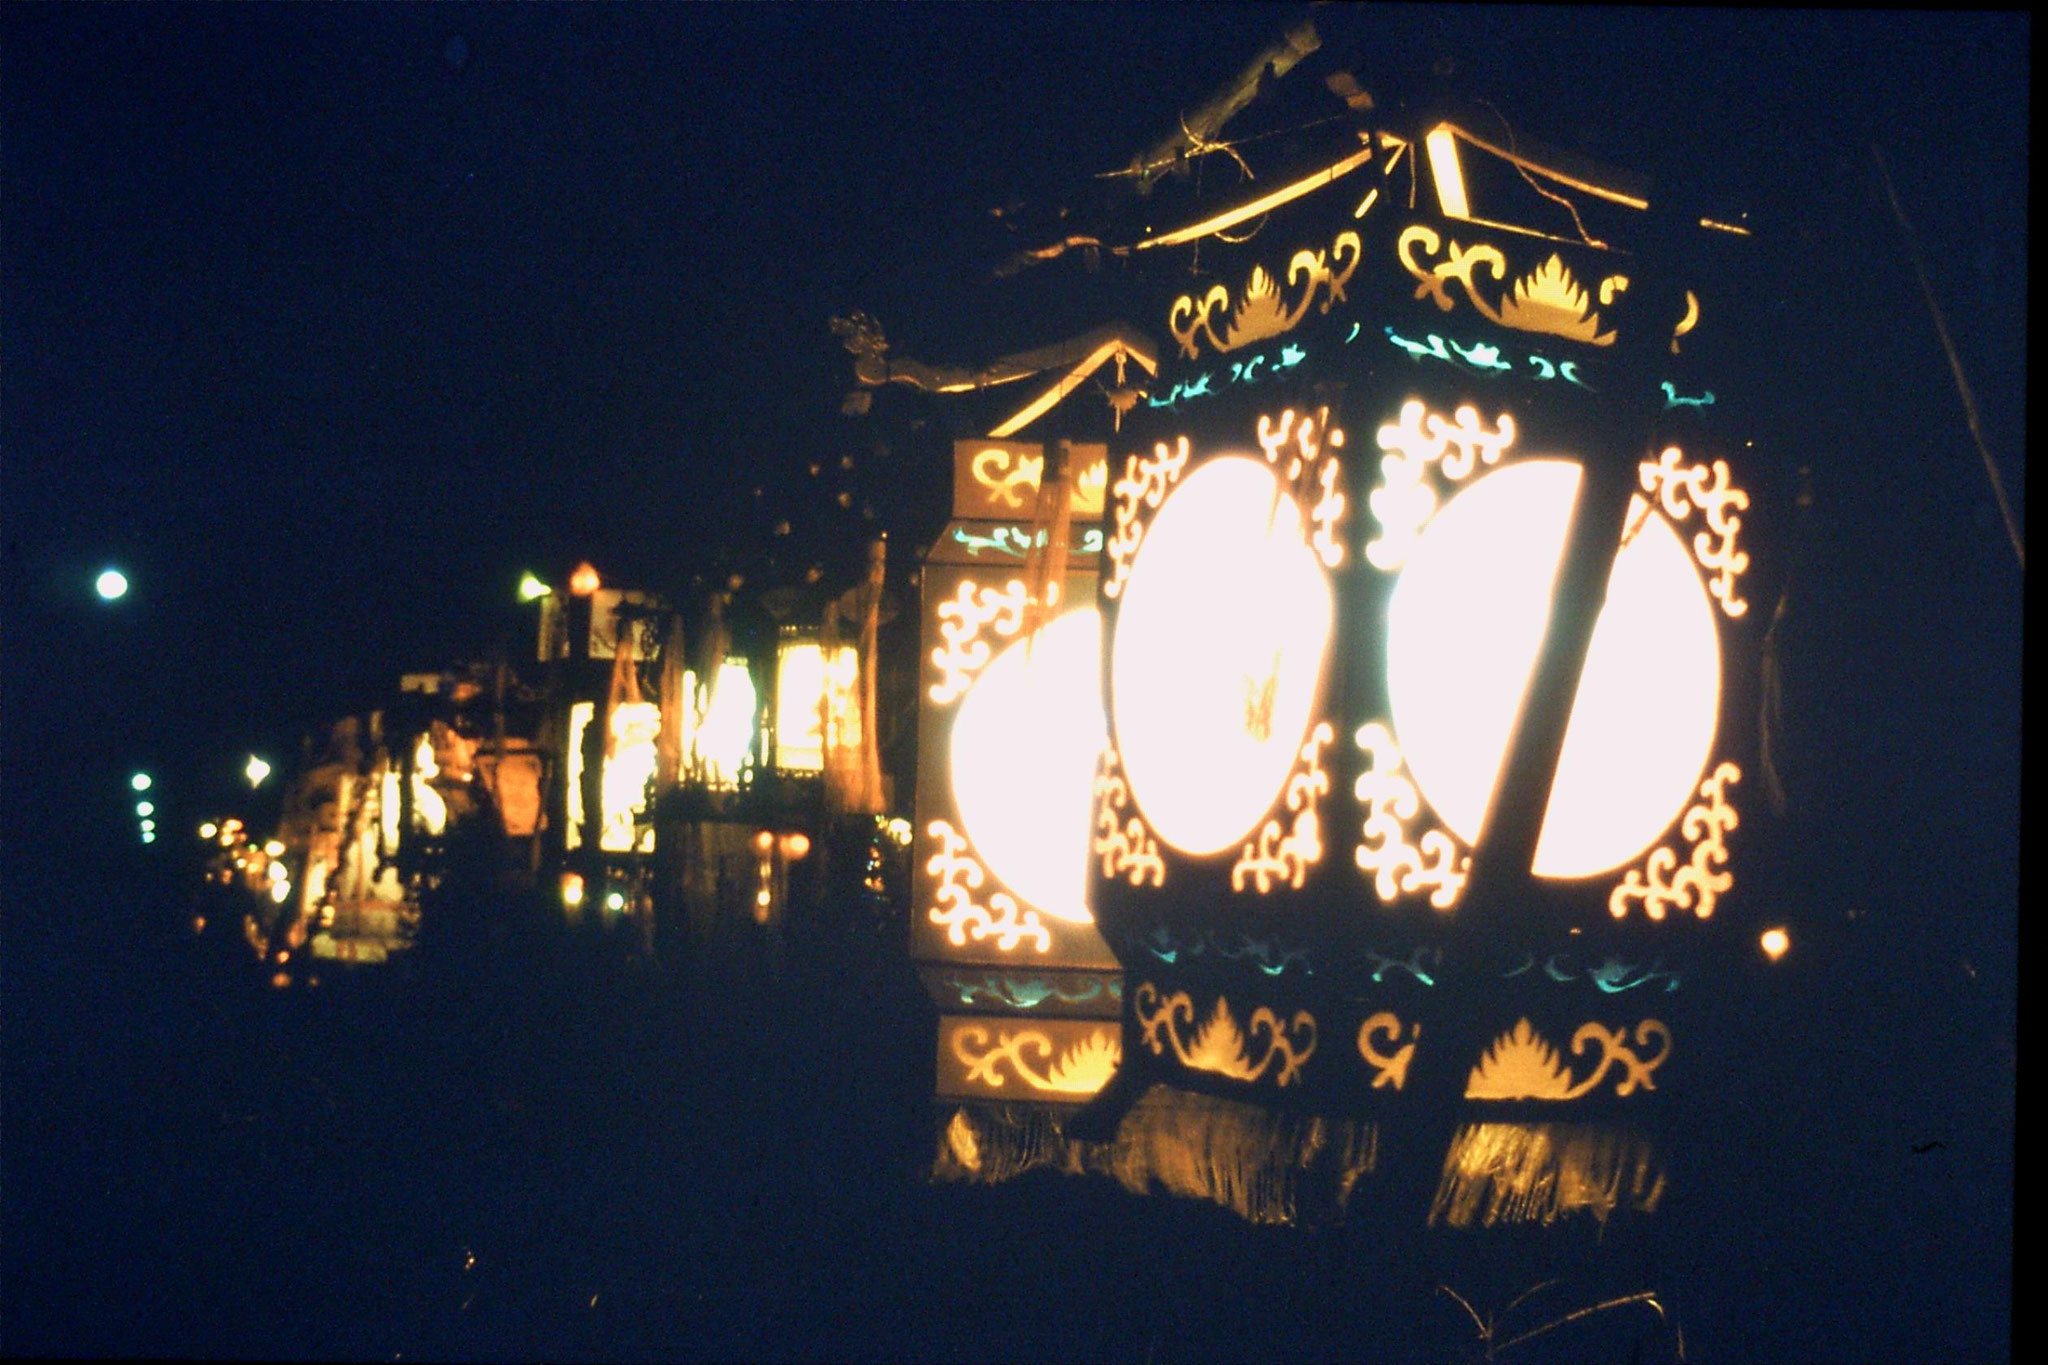 20/2/1989: 32: Qufu New Year lanterns